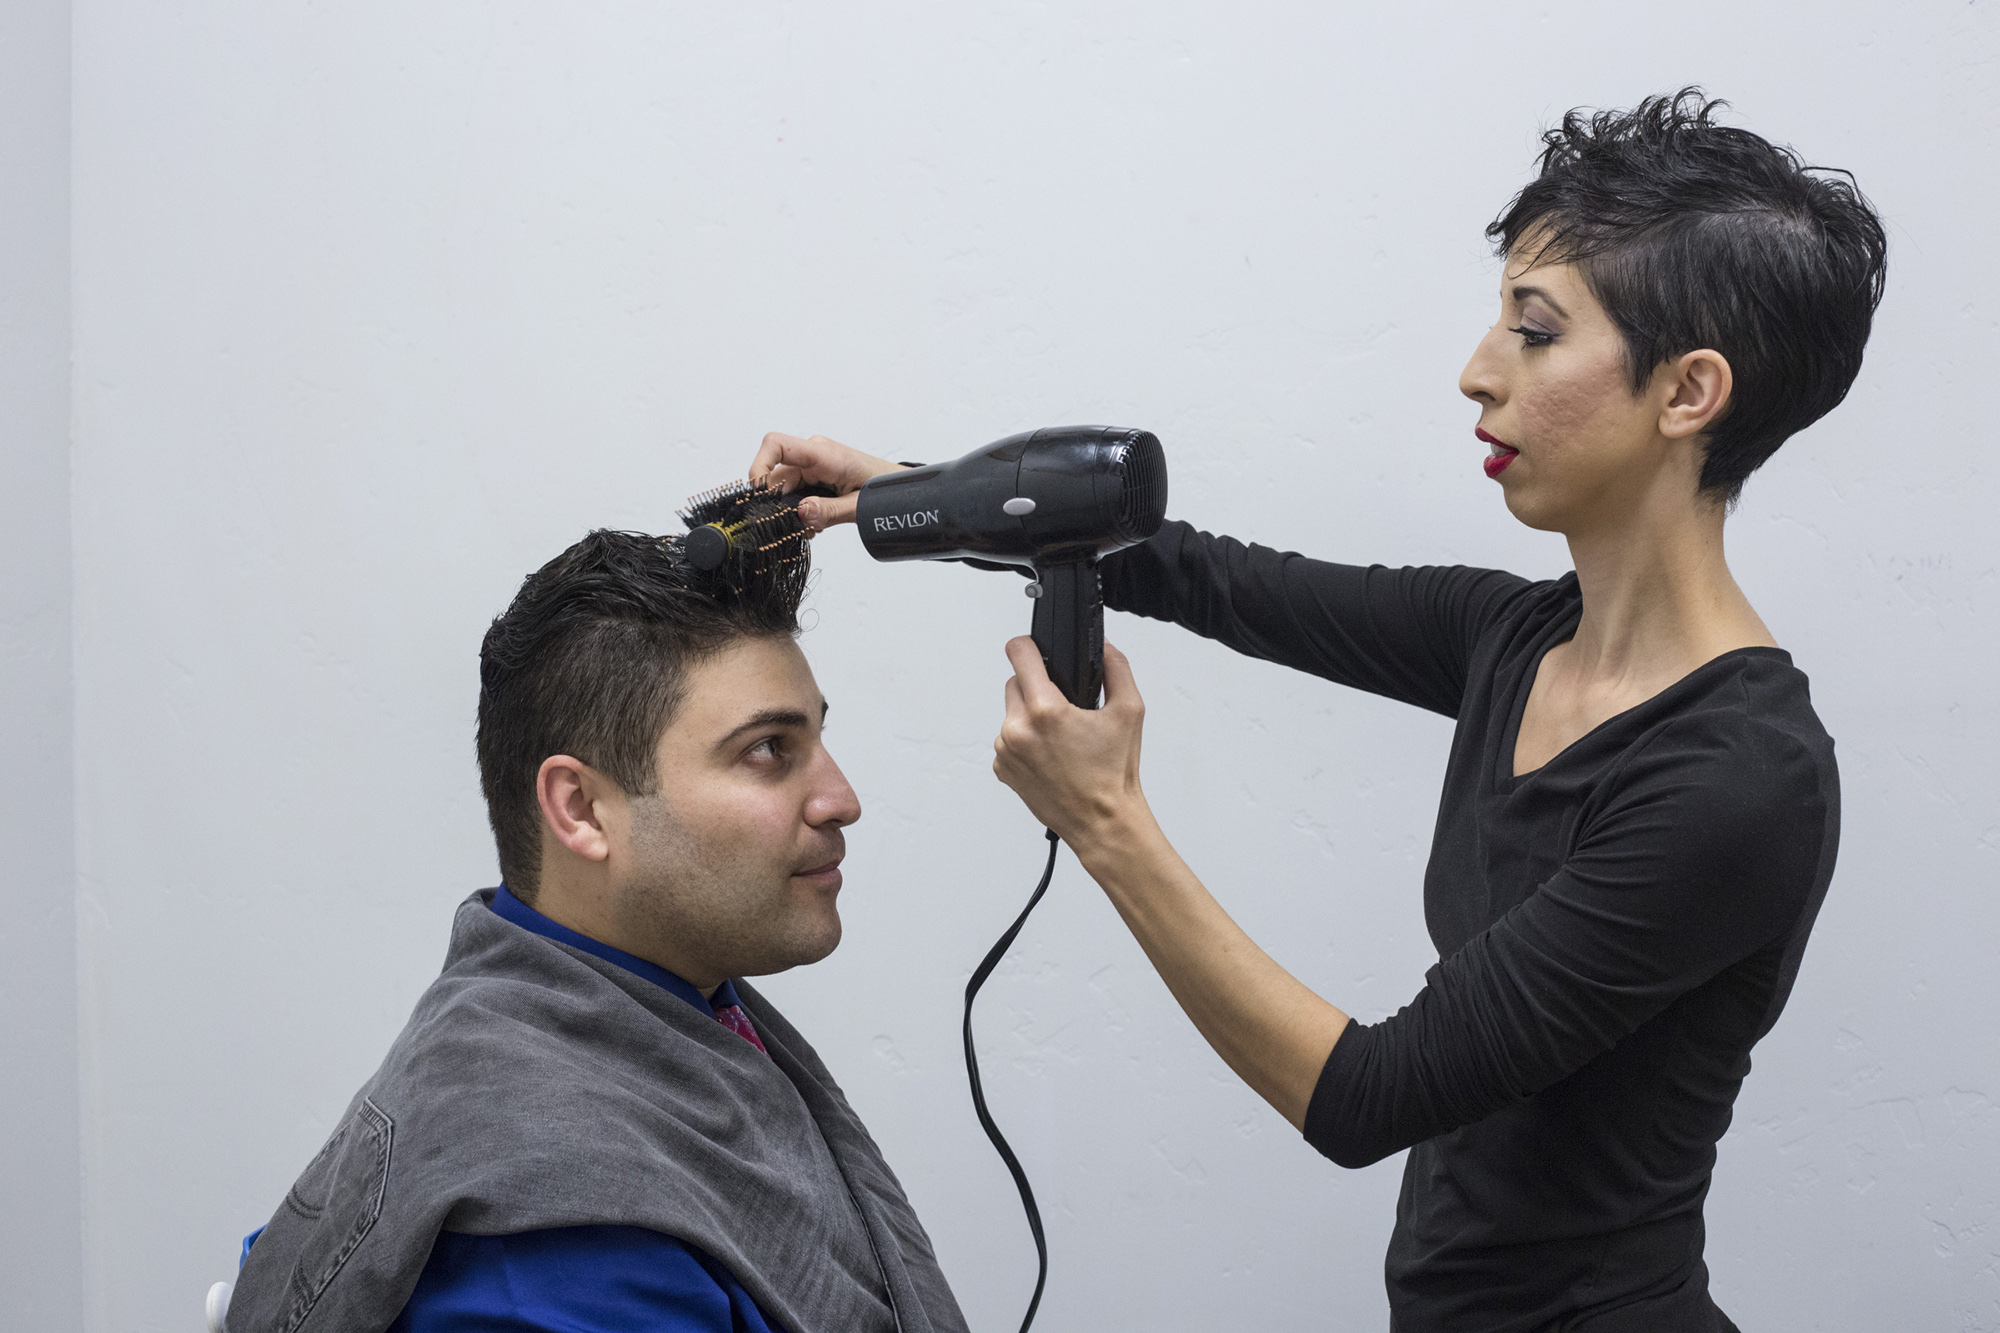 Omar's wife, Jasmín, helps him fix his hair before their performance. Jasmín, a contemporary flamenco and modern dancer, is Omar's frequent collaborator. (Brittany Greeson/The GroundTruth Project)